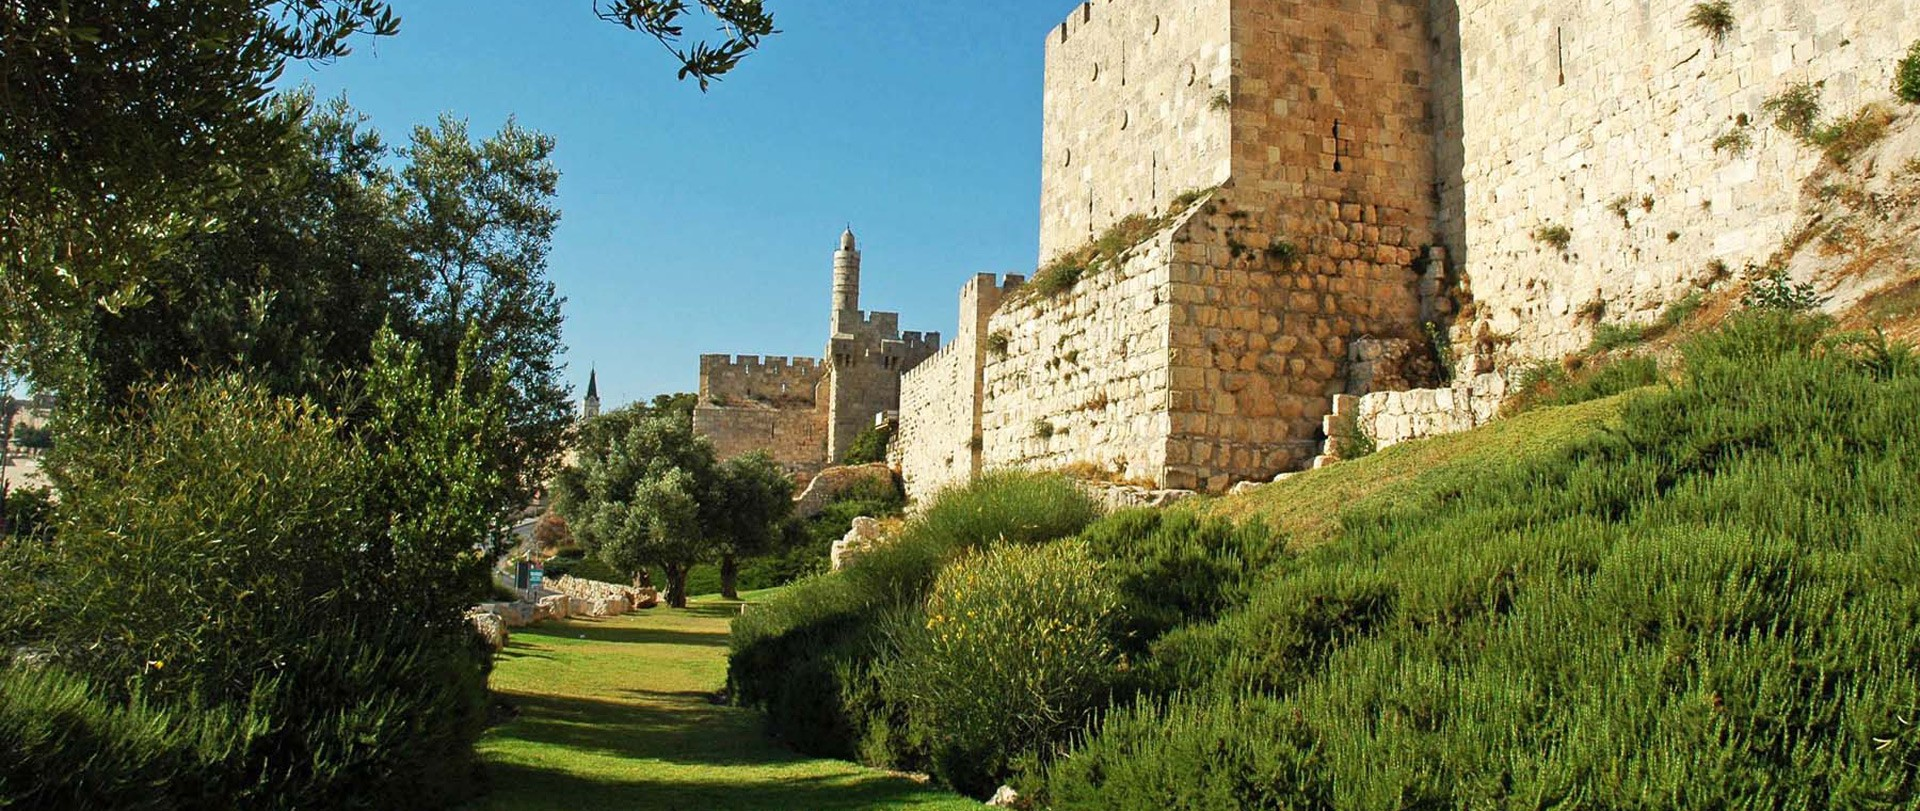 Register now for a free vacation to Israel